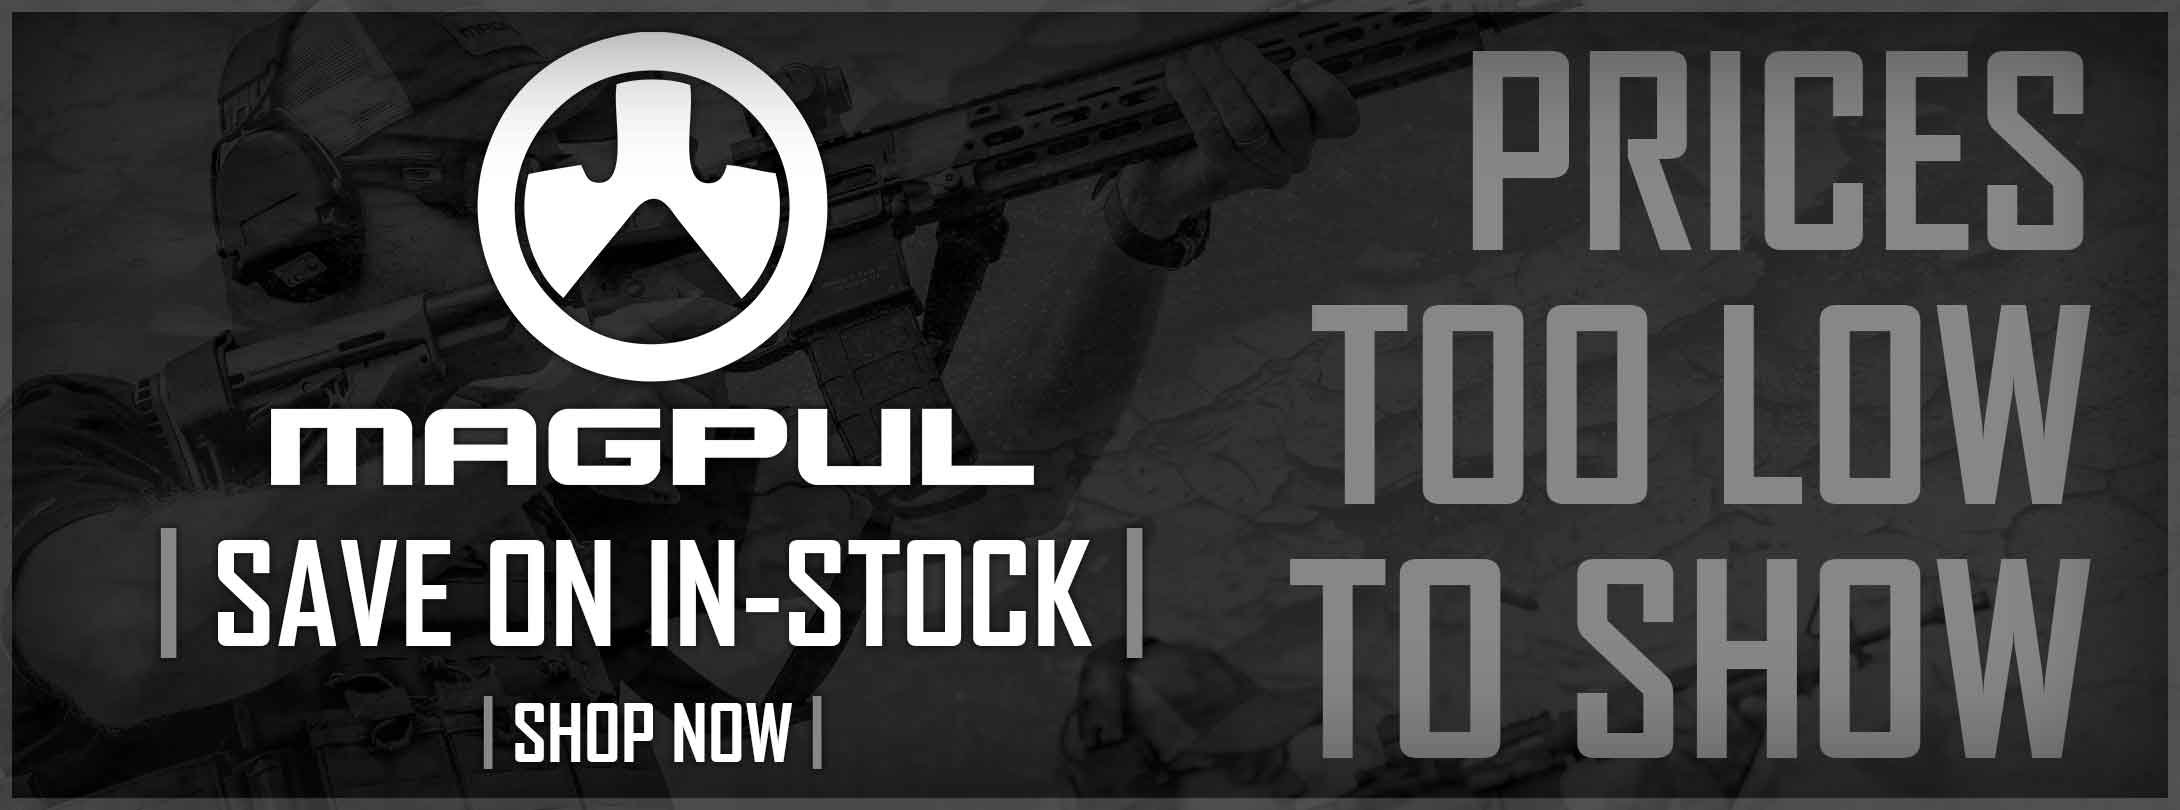 Save on In-Stock Magpul!